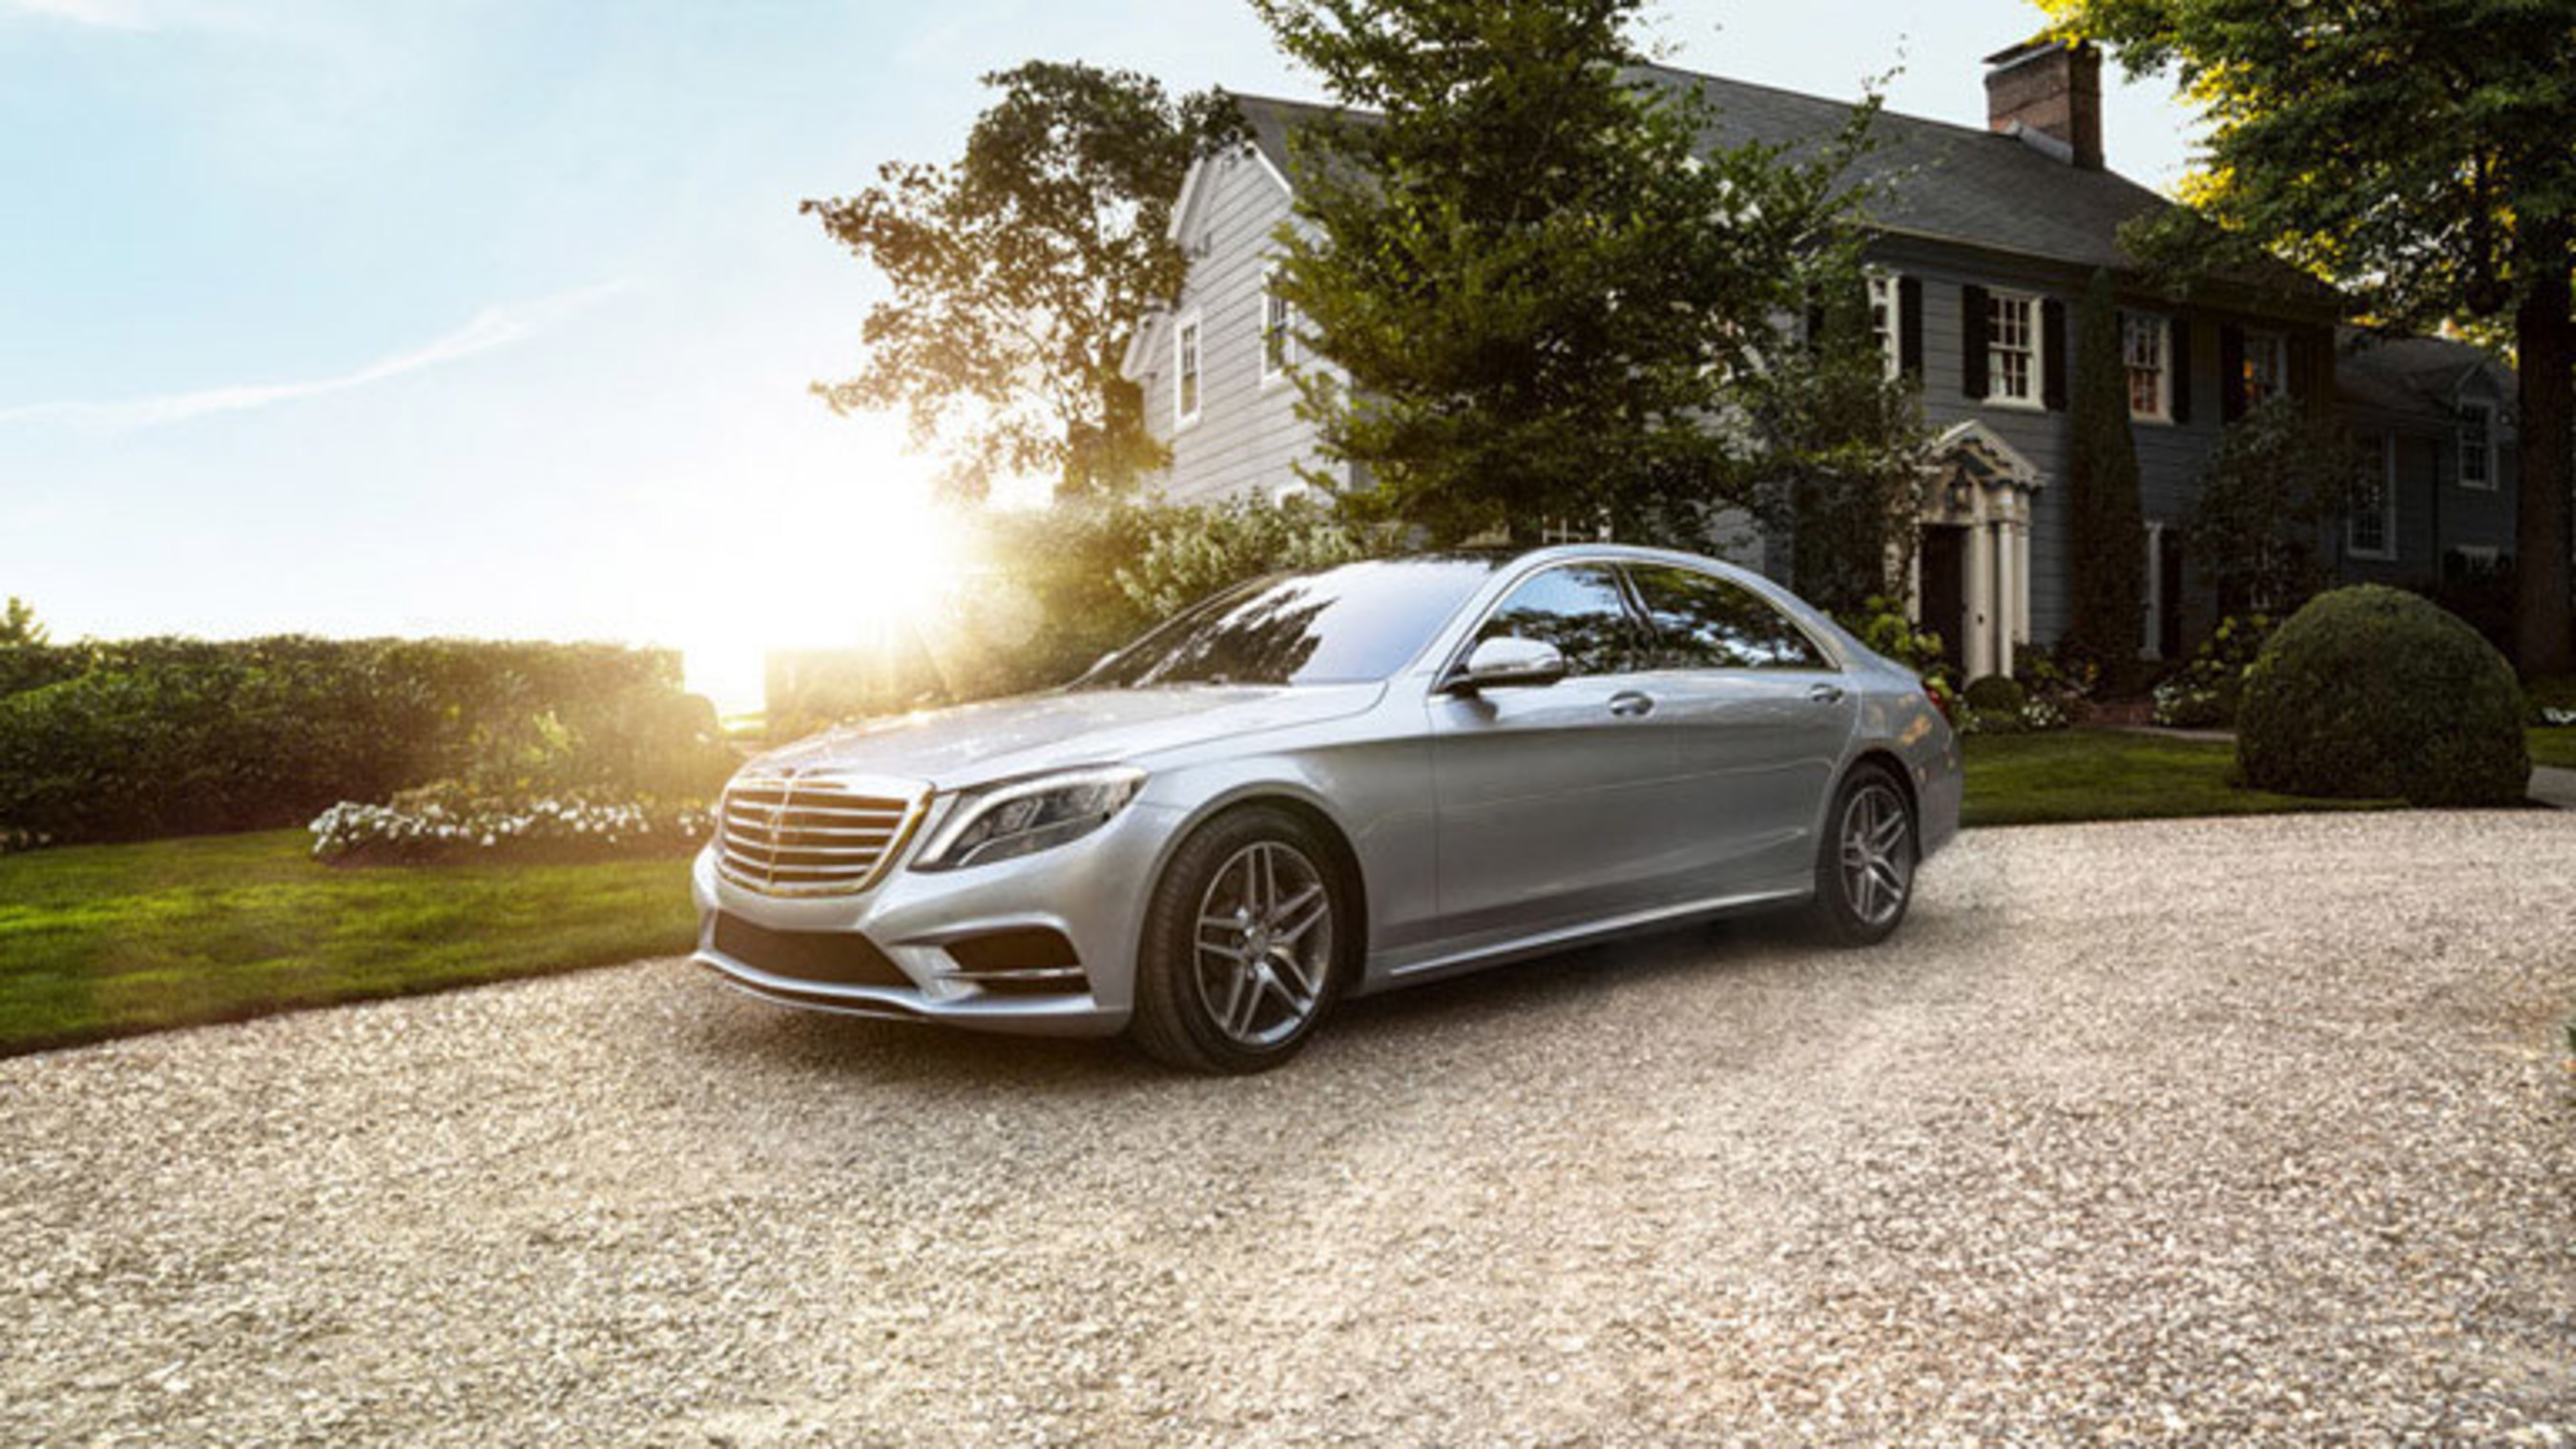 Shoppers will find high class luxury in the 2017 mercedes for Mercedes benz dealerships in chicago area